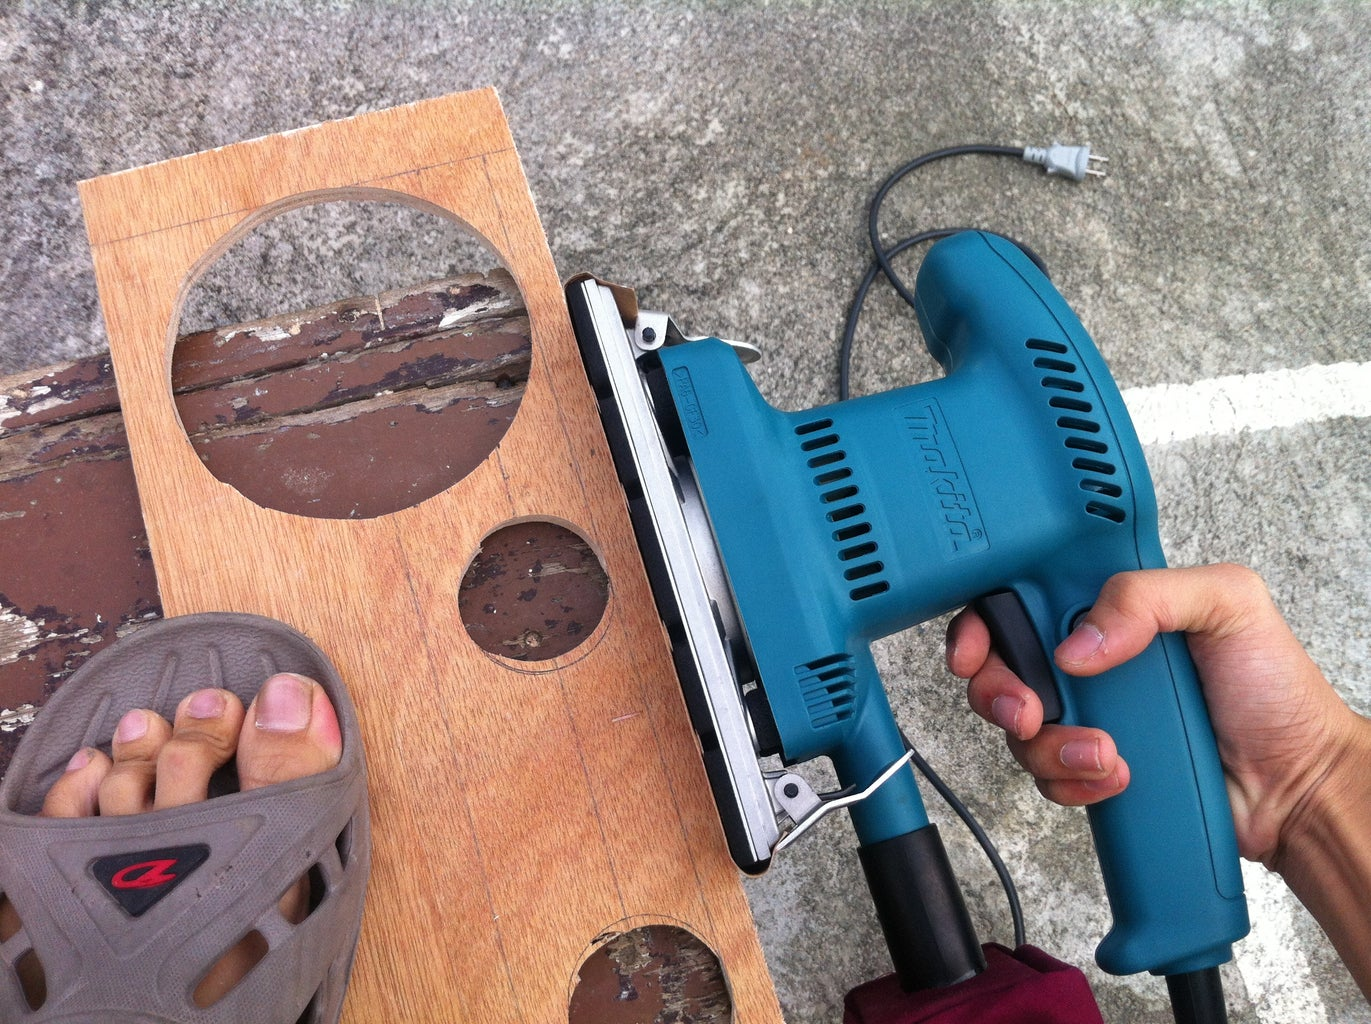 Sanding the Previously Cut Wood